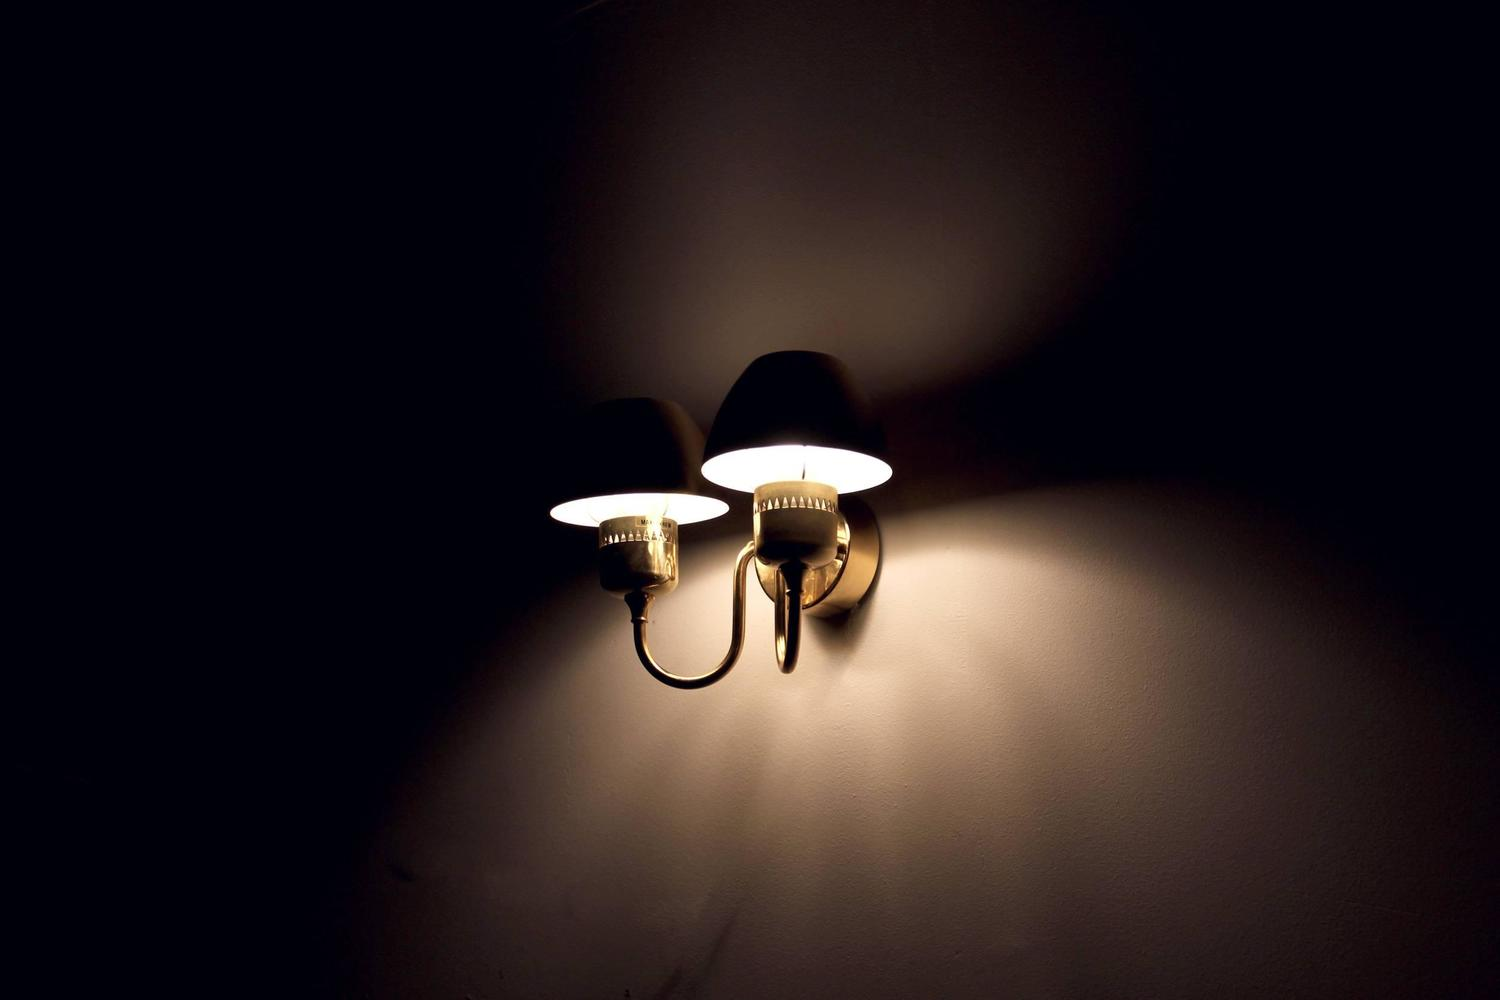 Pair of Wall Lights in Brass by Hans-Agne Jakobsson, 1960s For Sale at 1stdibs